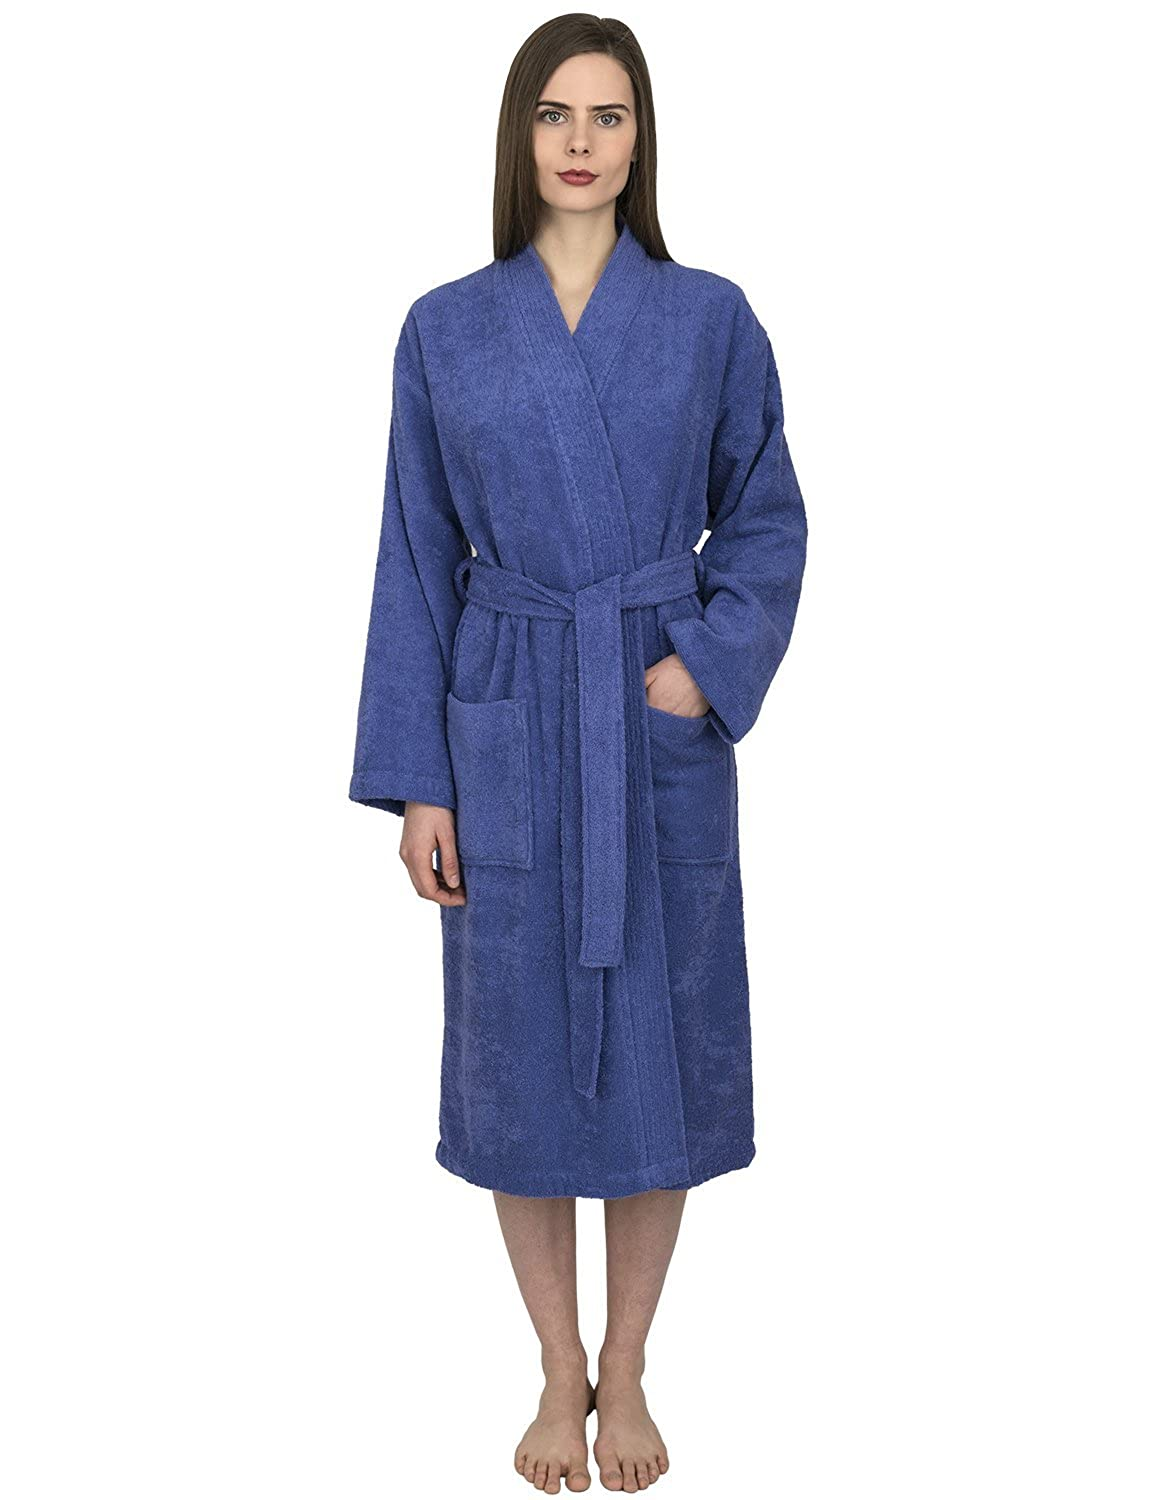 Top 10 Best Plush Bathrobes for Women Buying Guide 2016-2017 on ...